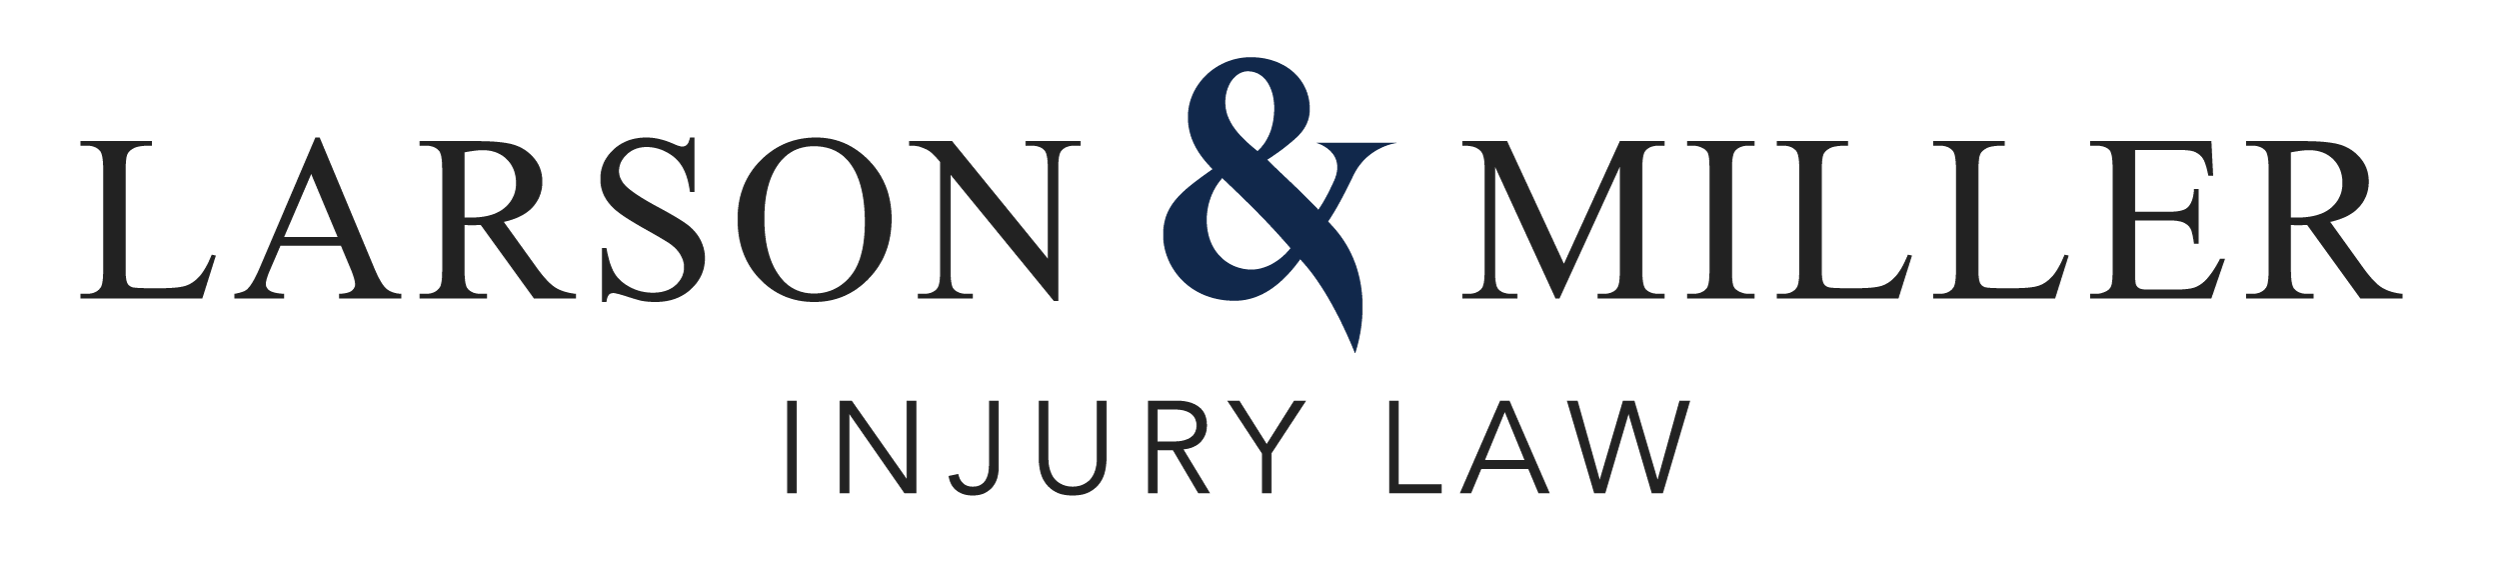 Larson and Miller Injury Law